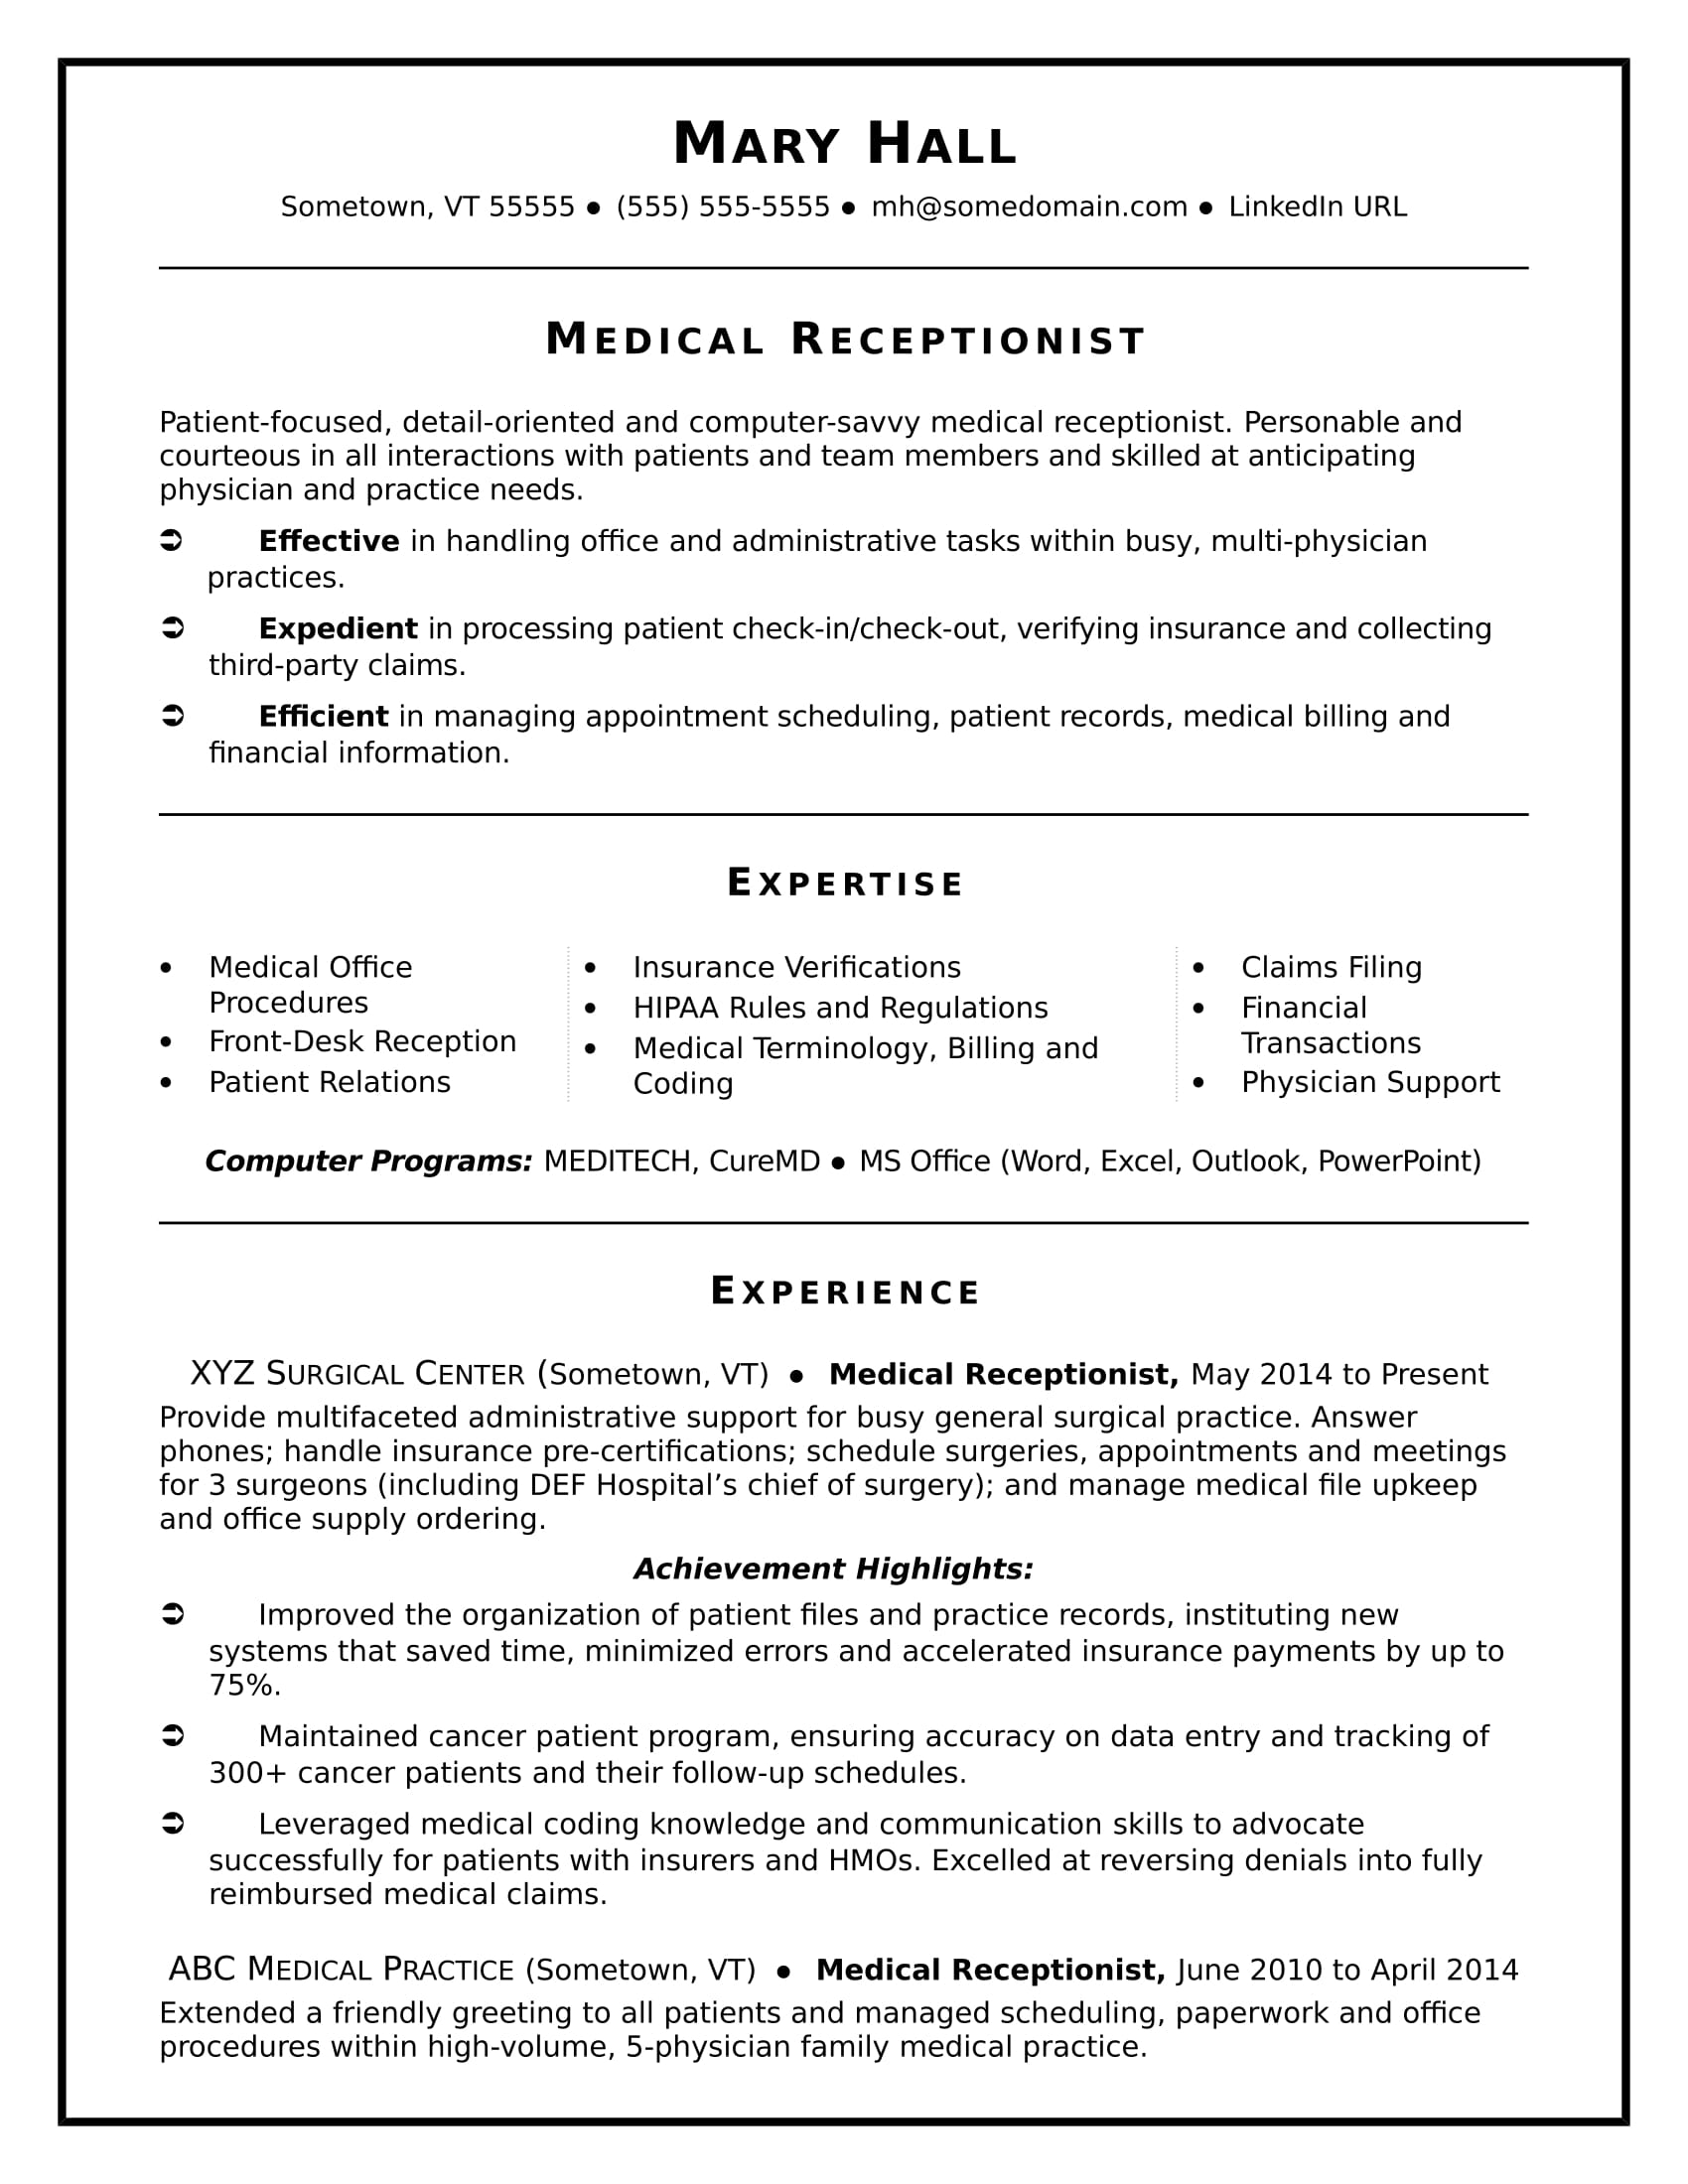 medical receptionist resume sample monster for hospital job linkedin review programmer Resume Resume For Hospital Job